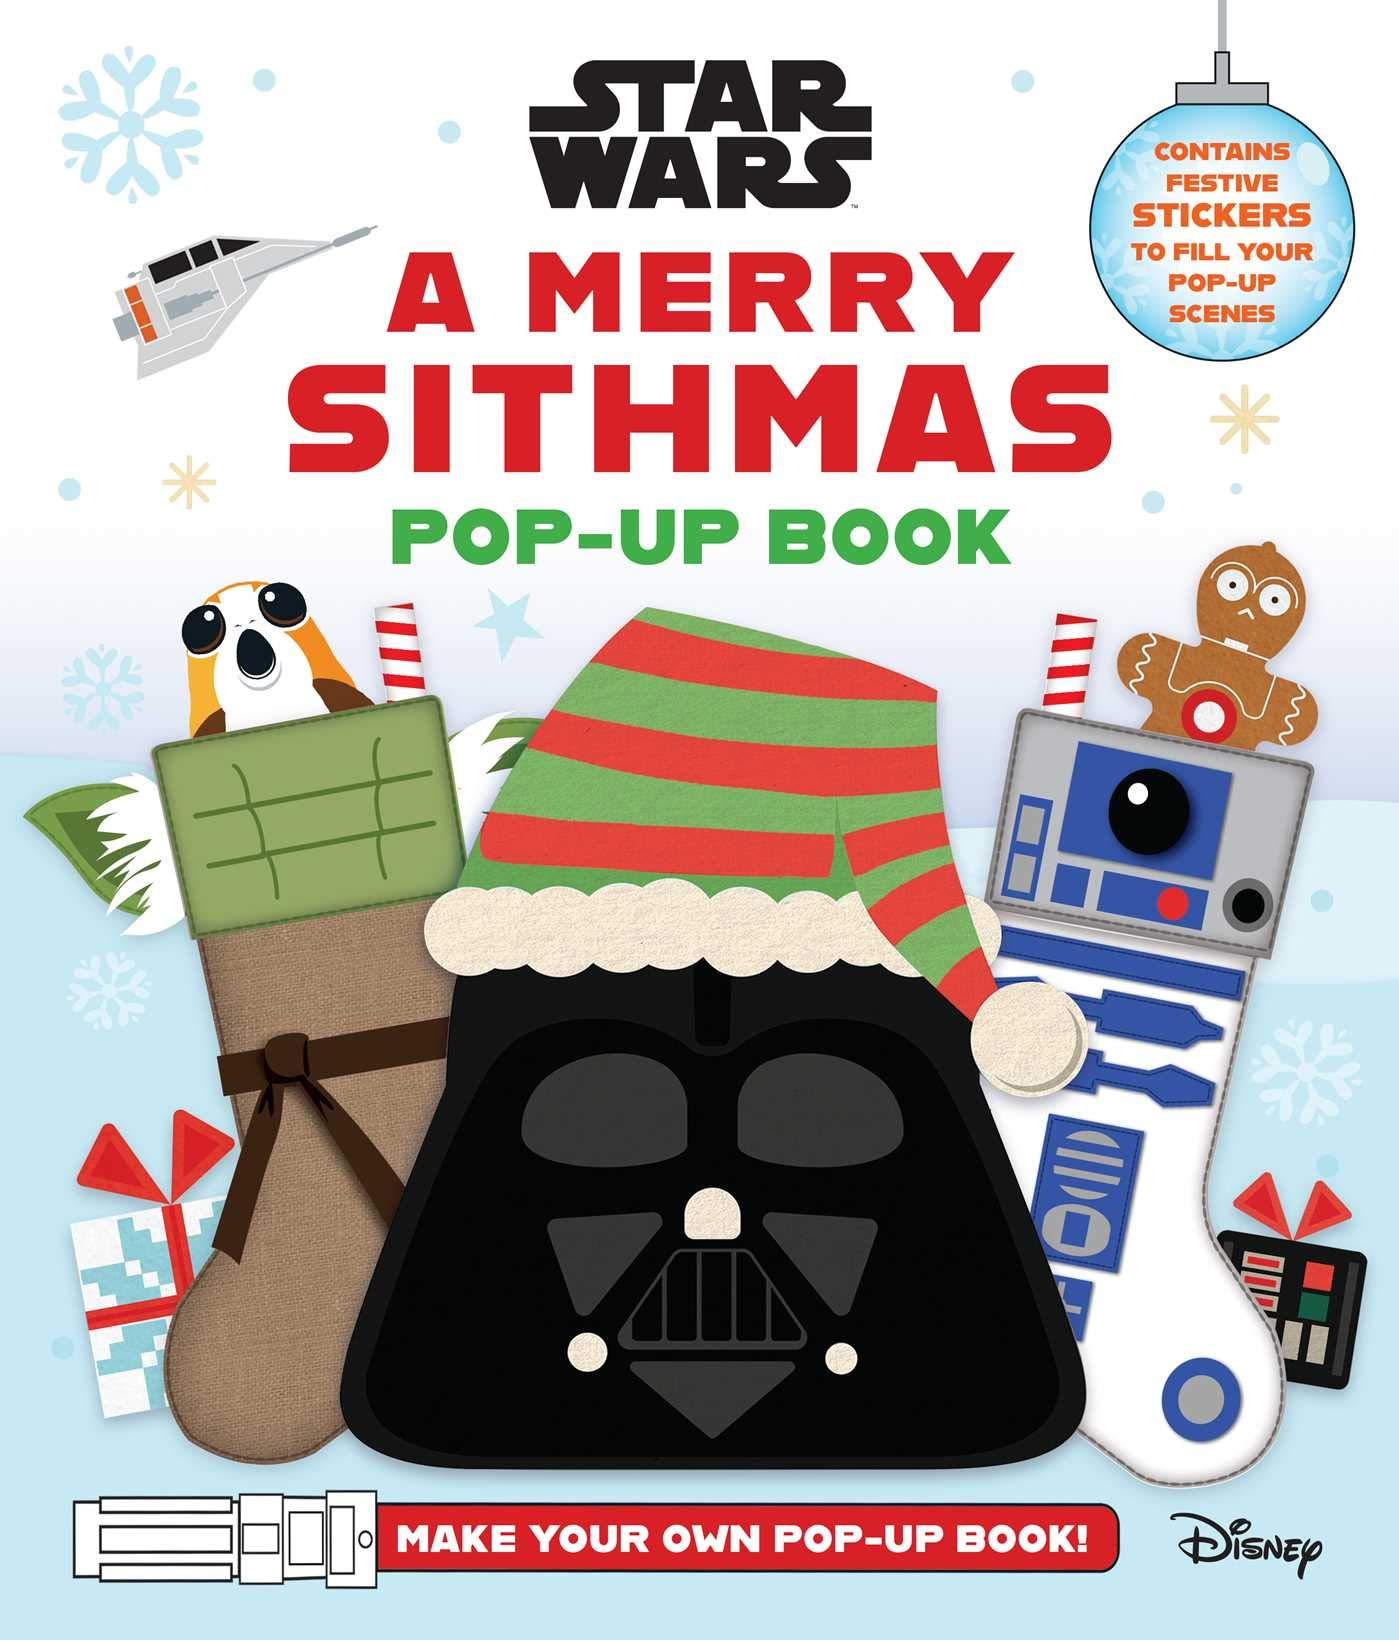 Star Wars A Merry Sithmas Pop-Up Book